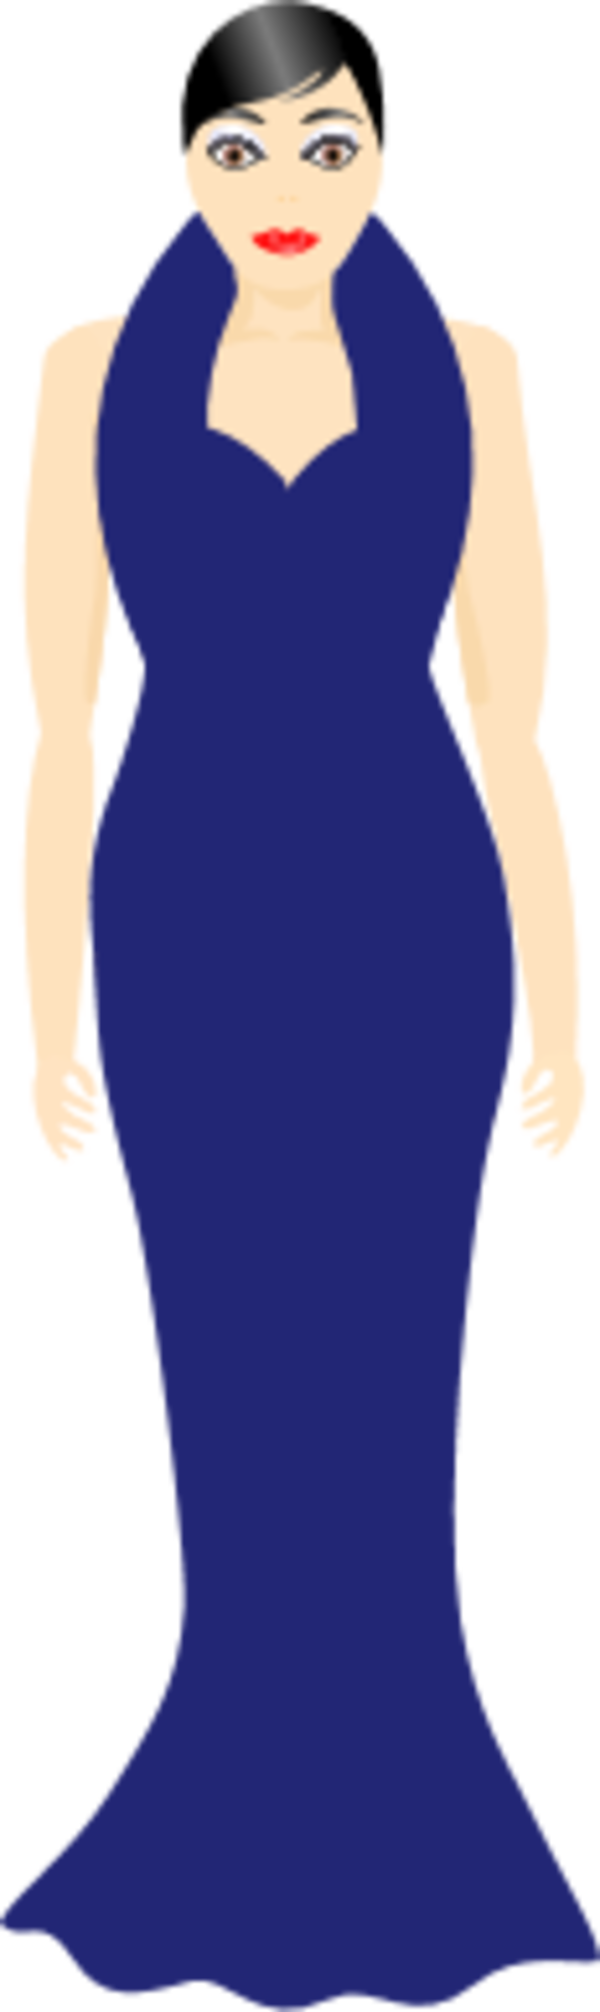 Clipart of silhouette girls in dressy clothes.